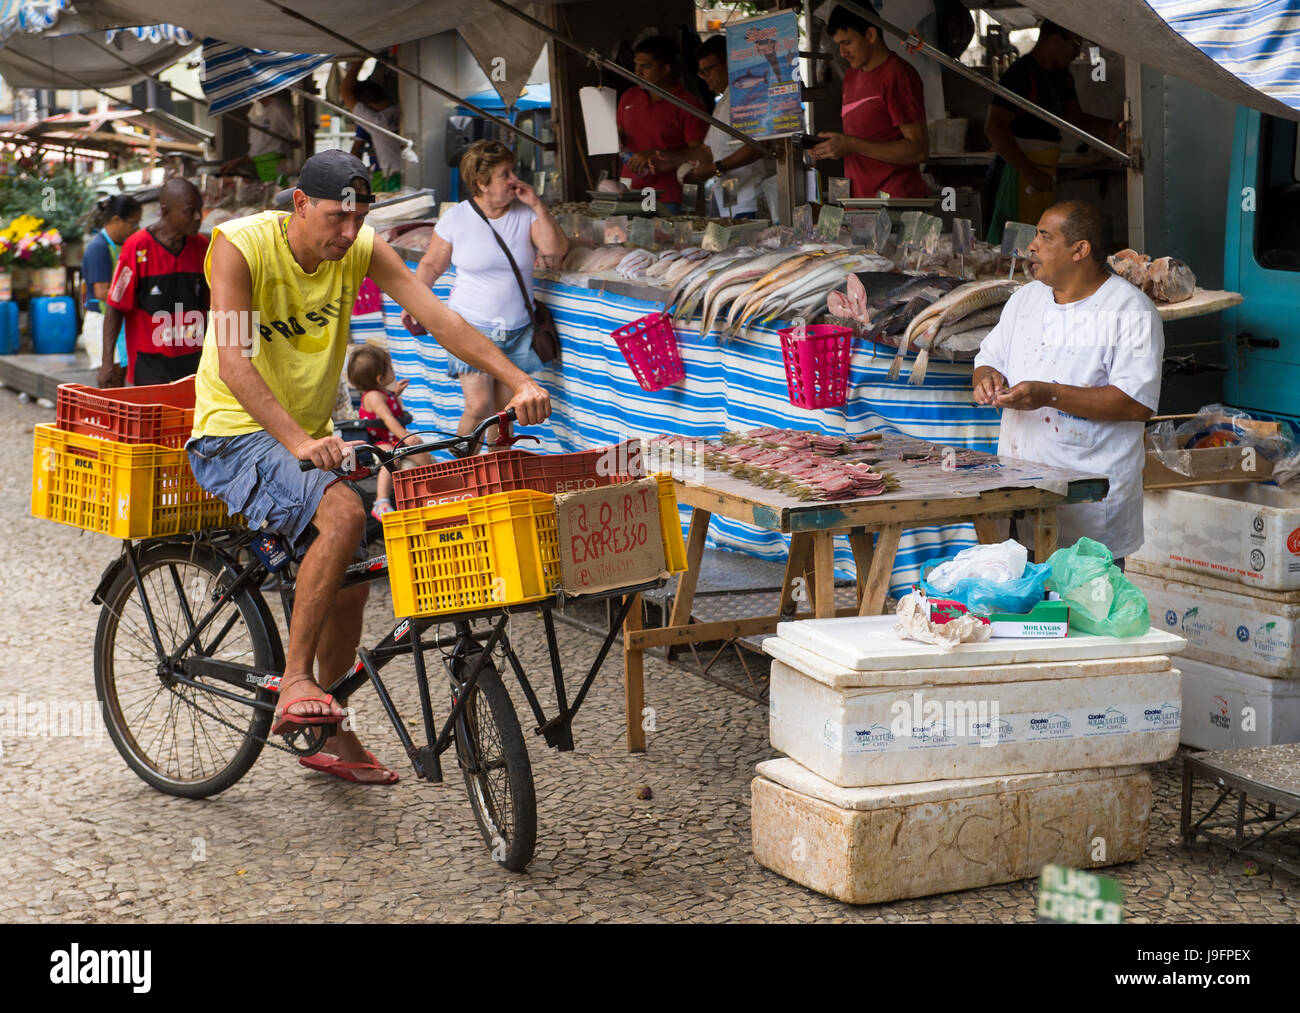 RIO DE JANEIRO - JANUARY 31, 2017: Customers shop at the fish market, an outdoor stall in the weekly farmers market - Stock Image